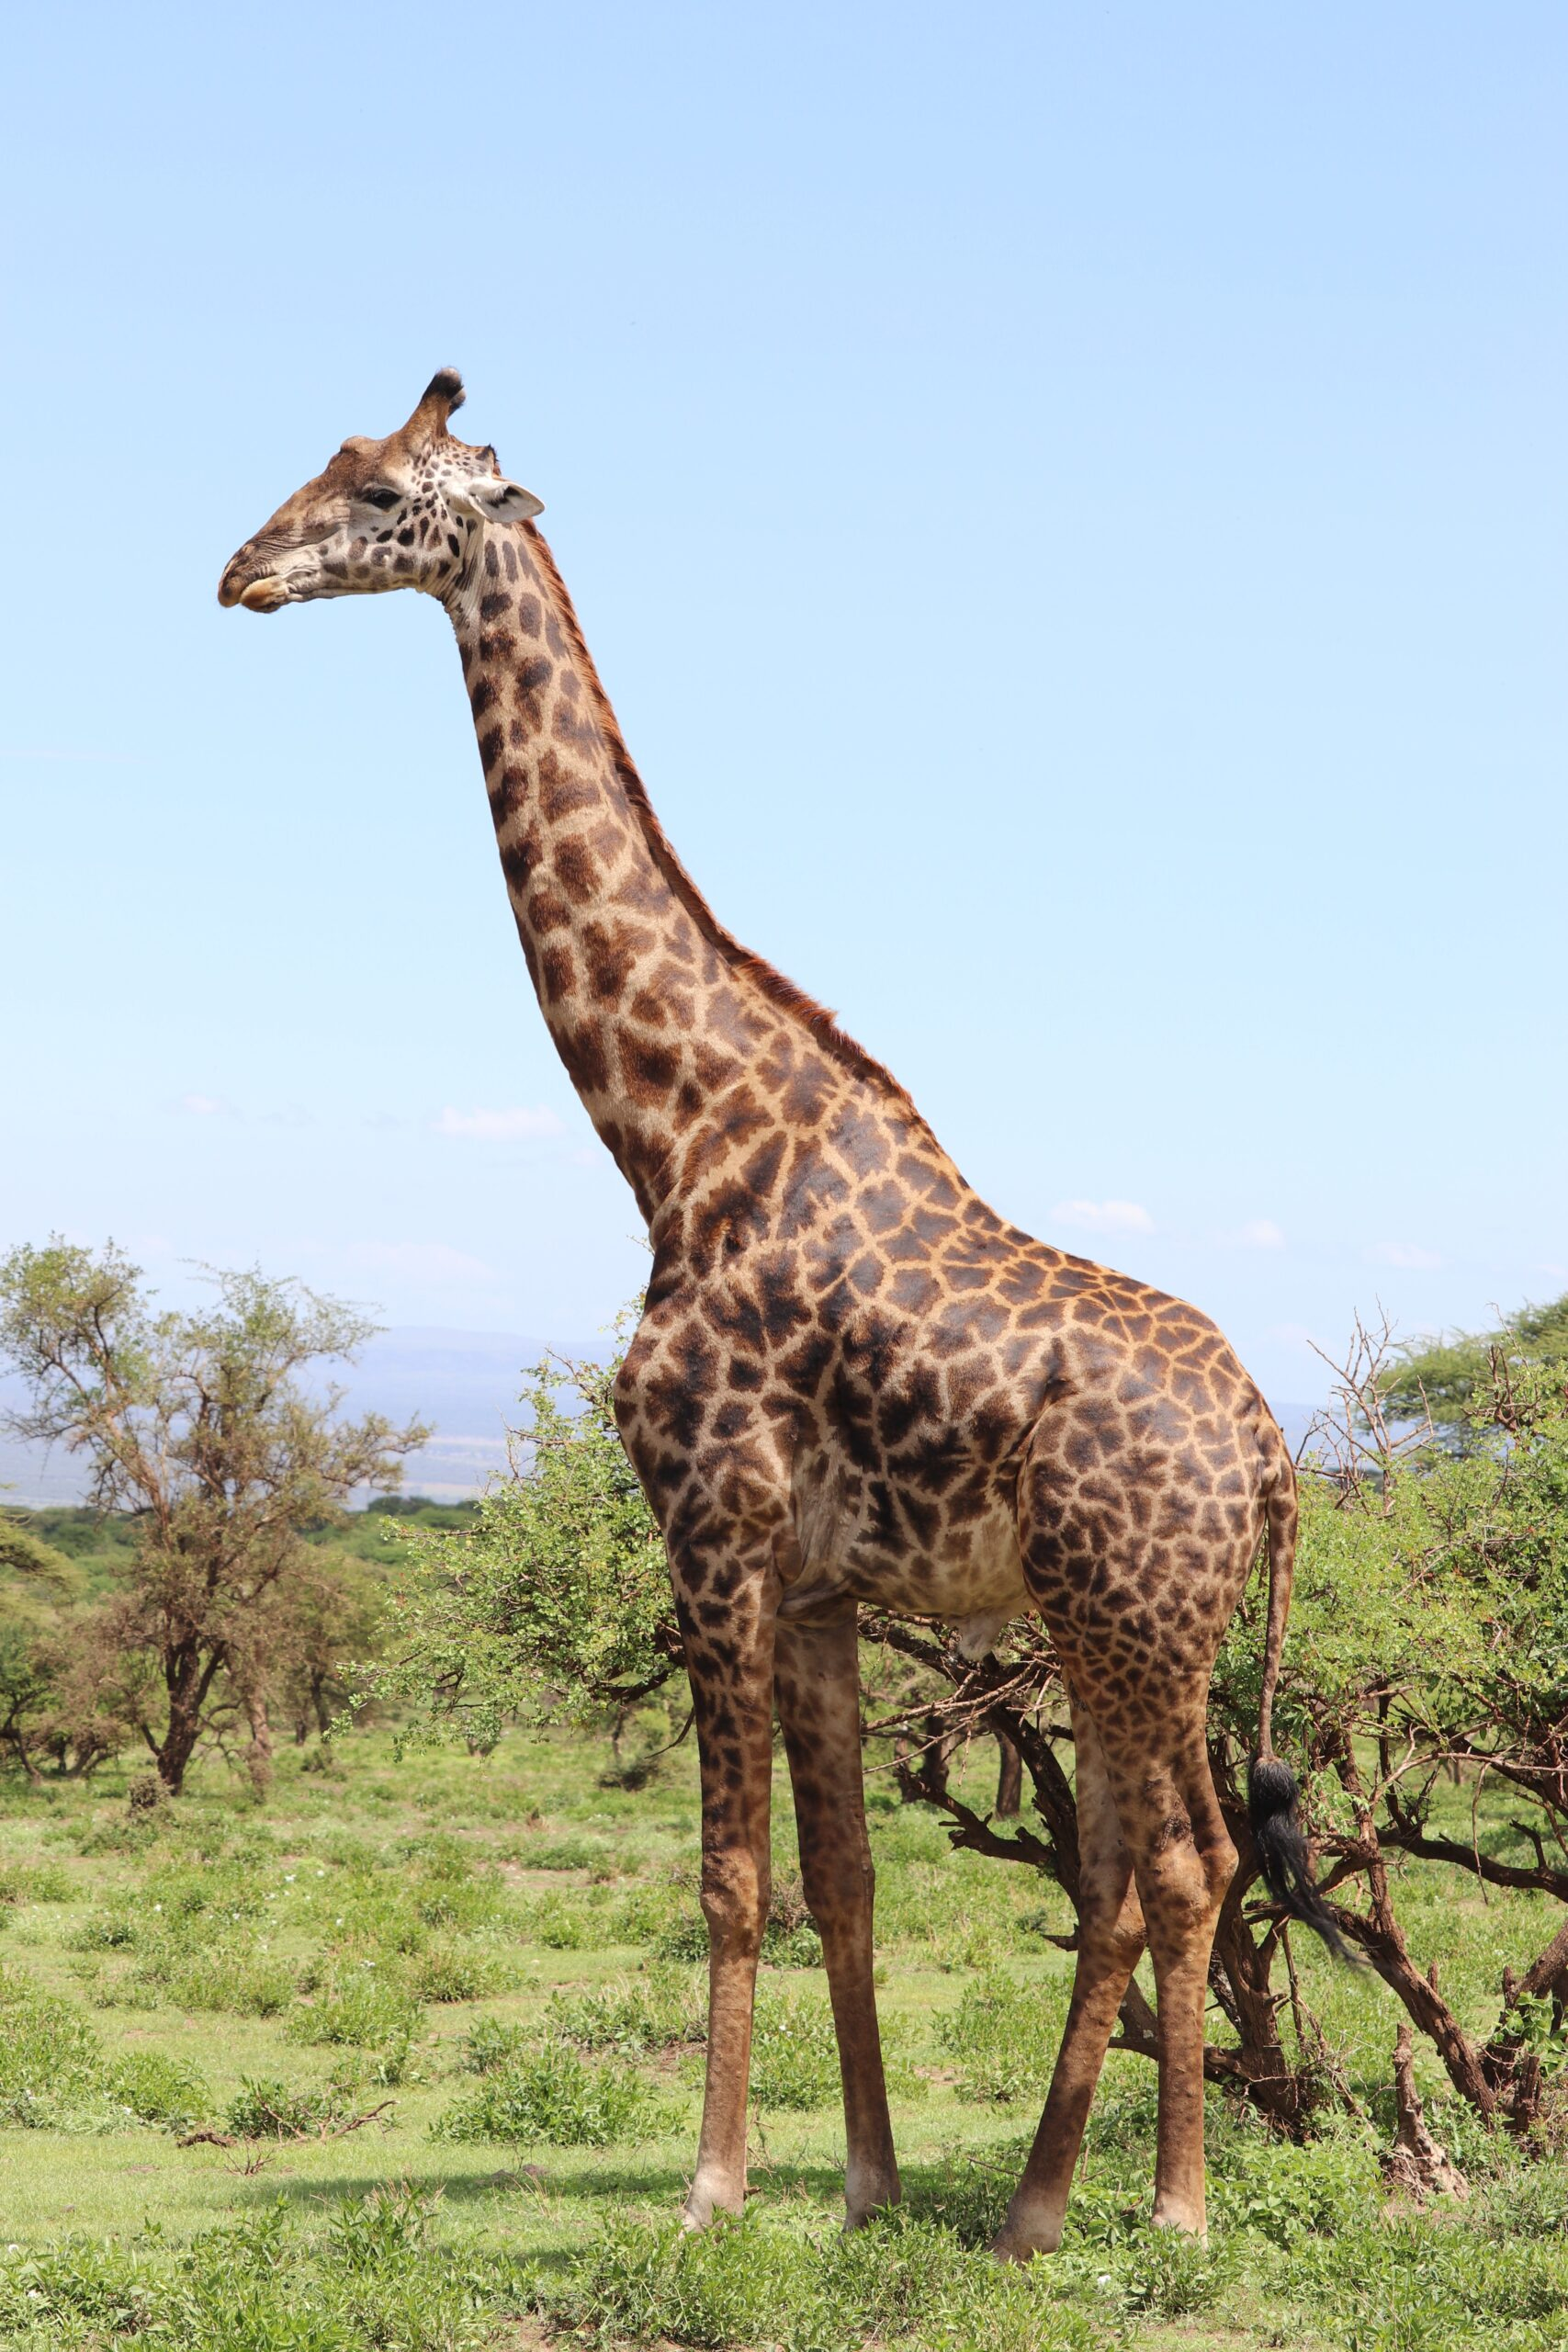 picture of a giraffe on the plains